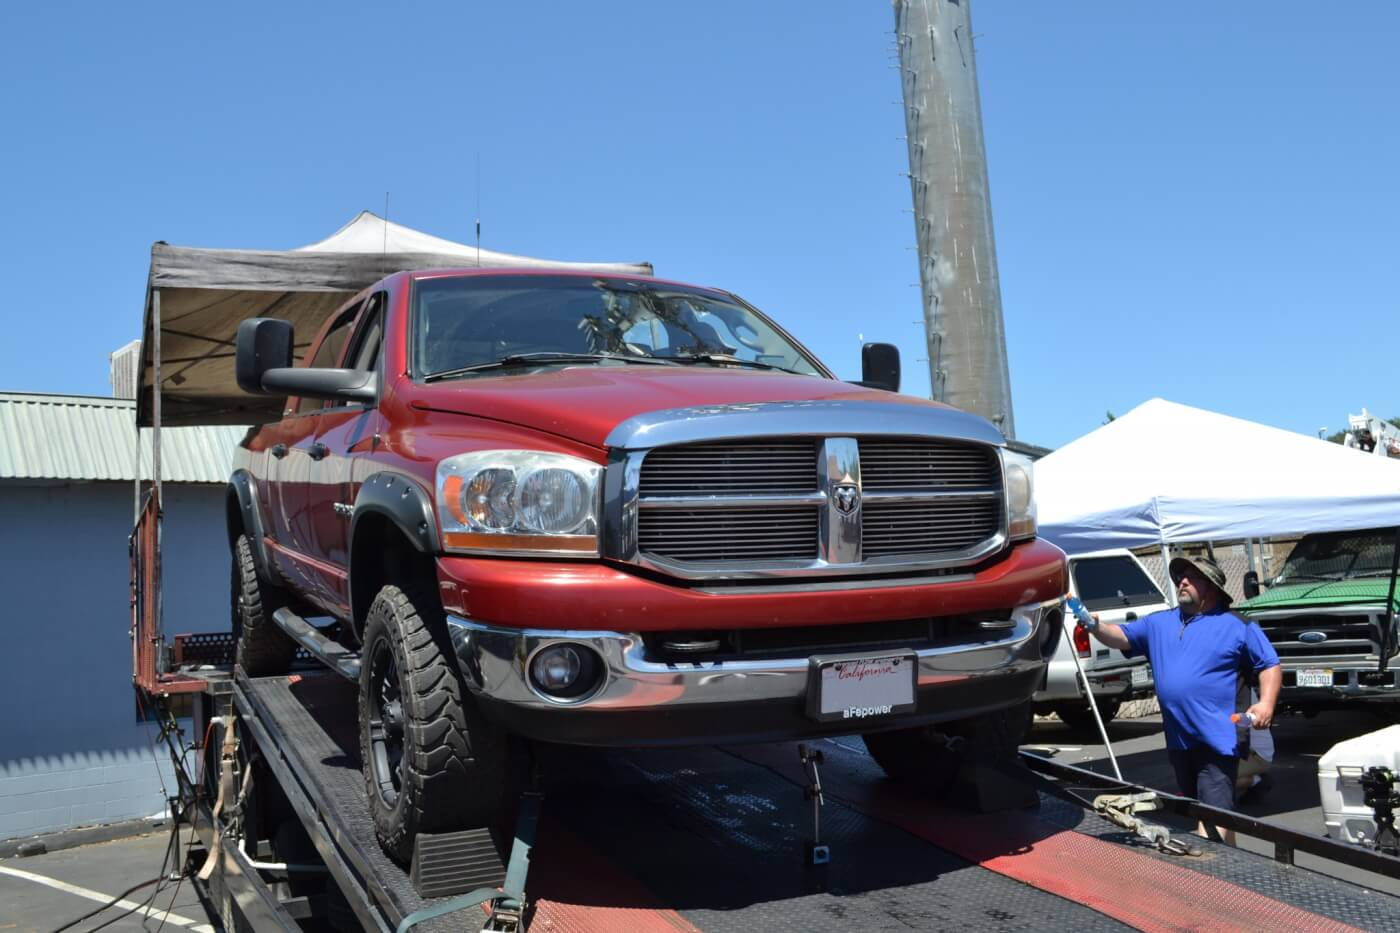 Jeremy Torgerson was another Dodge owner who laid down some pretty impressive results. With compound turbos and some mild injectors, the Ram made 562 hp to the wheels on its tow tune, and 603 hp to the wheels on its all-out programming.